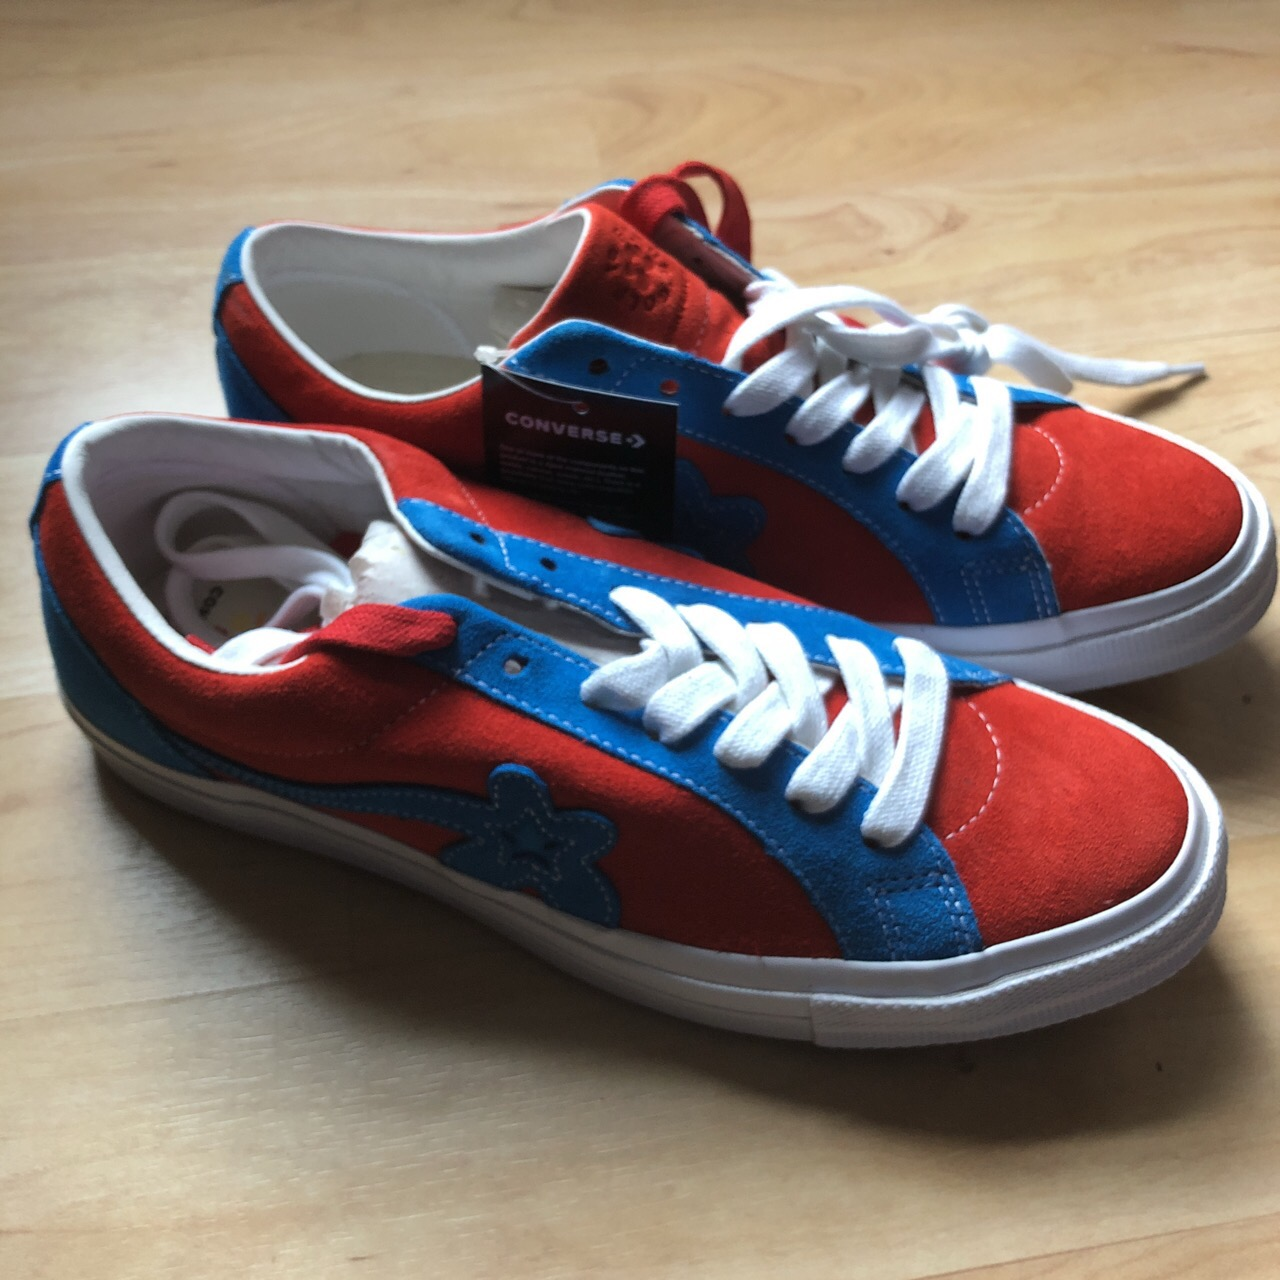 Converse Golf Le Fleur Red And Blue Grailed